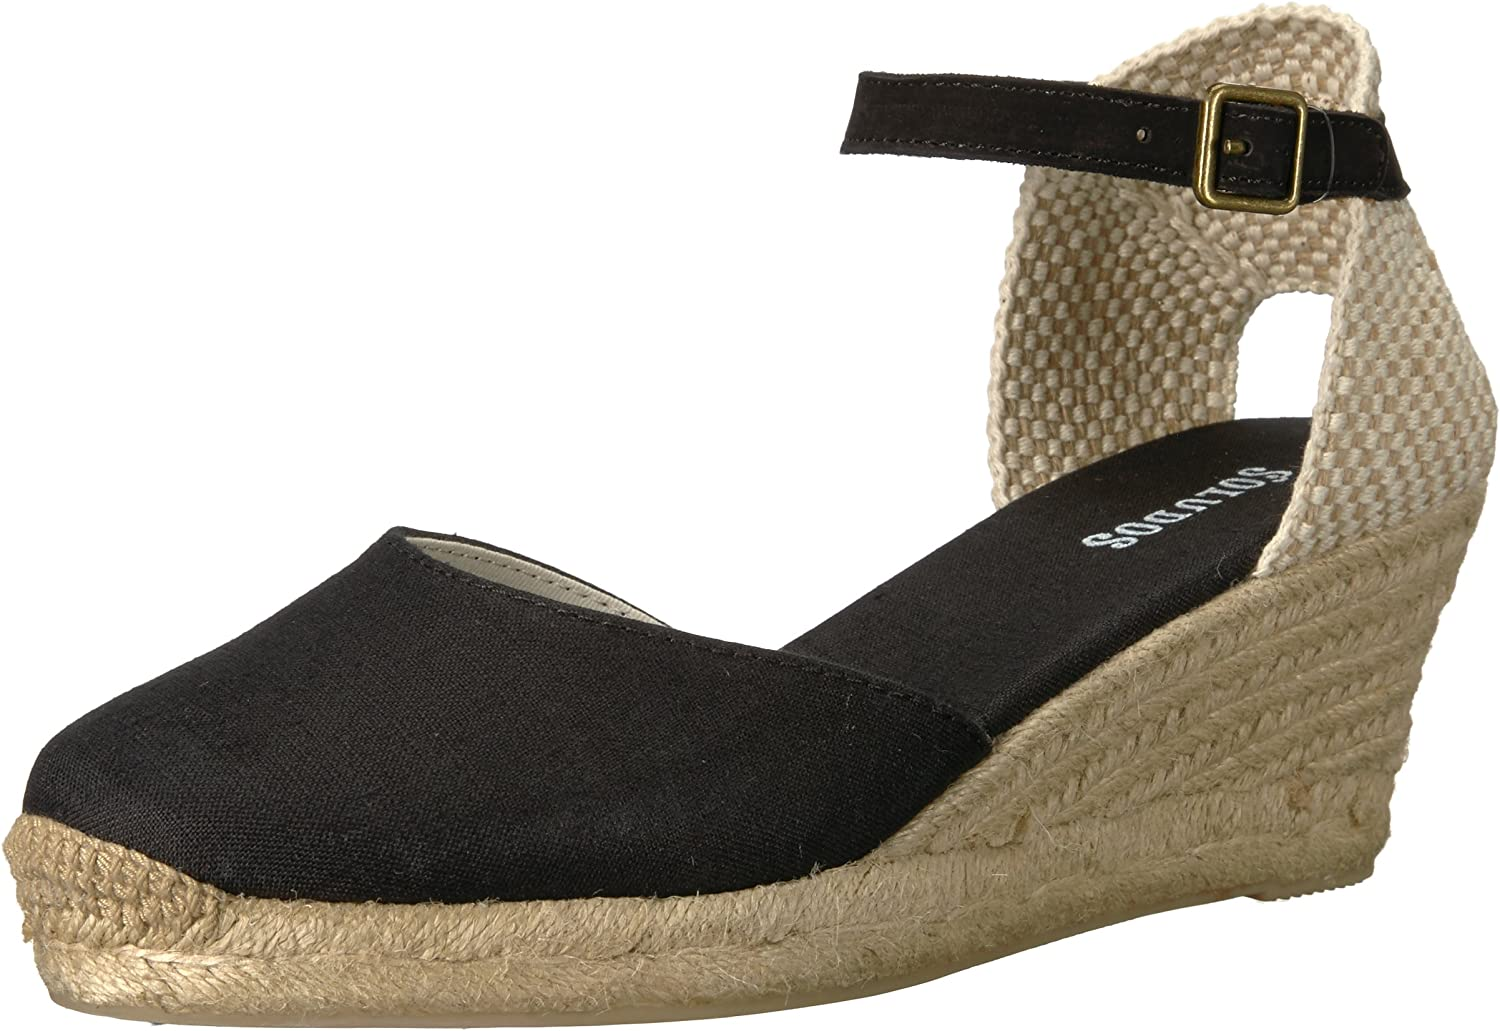 Soludos Womens Closed-Toe Midwedge (70mm) Espadrille Wedge Sandal